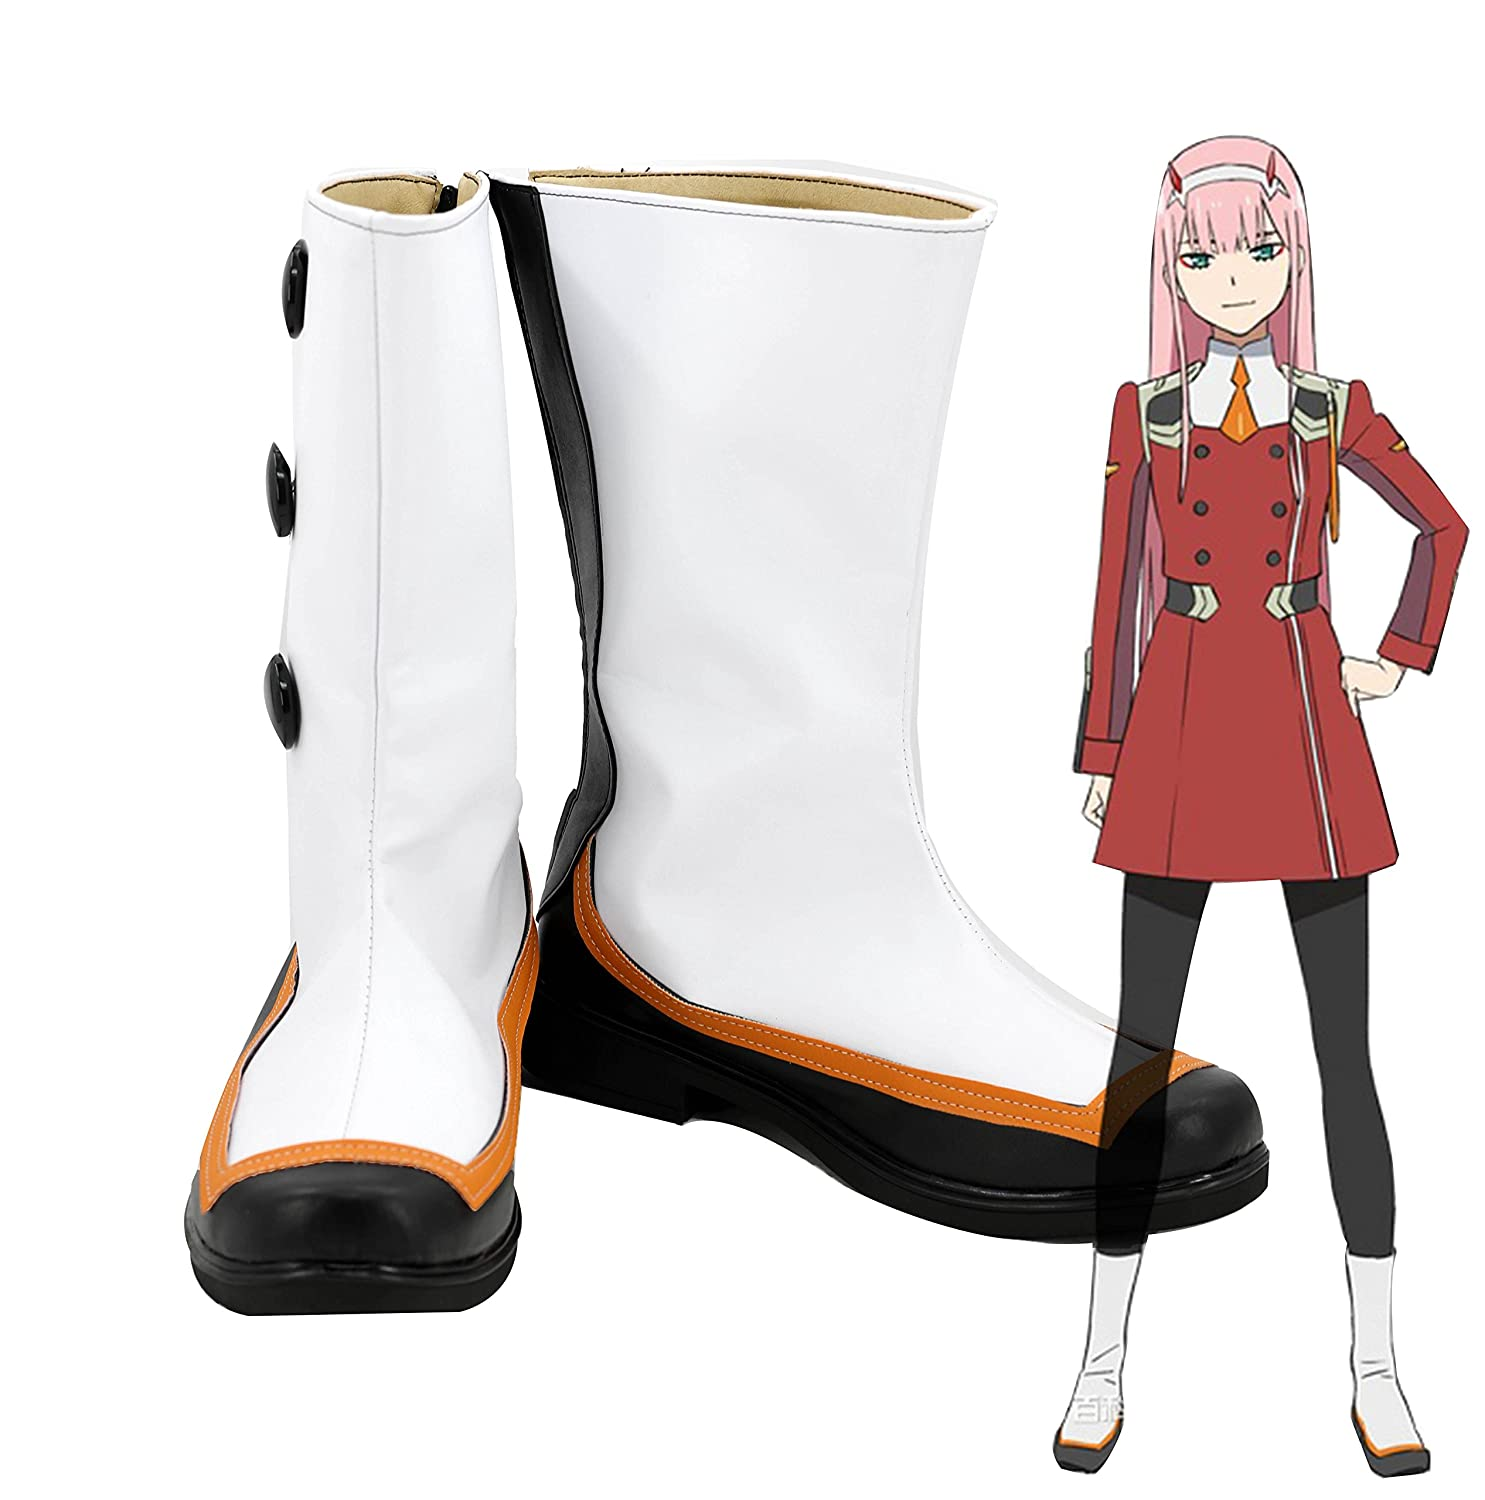 Telacos DARLING in the FRANXX 02 ZERO TWO Cosplay Shoes Boots Custom Made 9 B(M) US Female